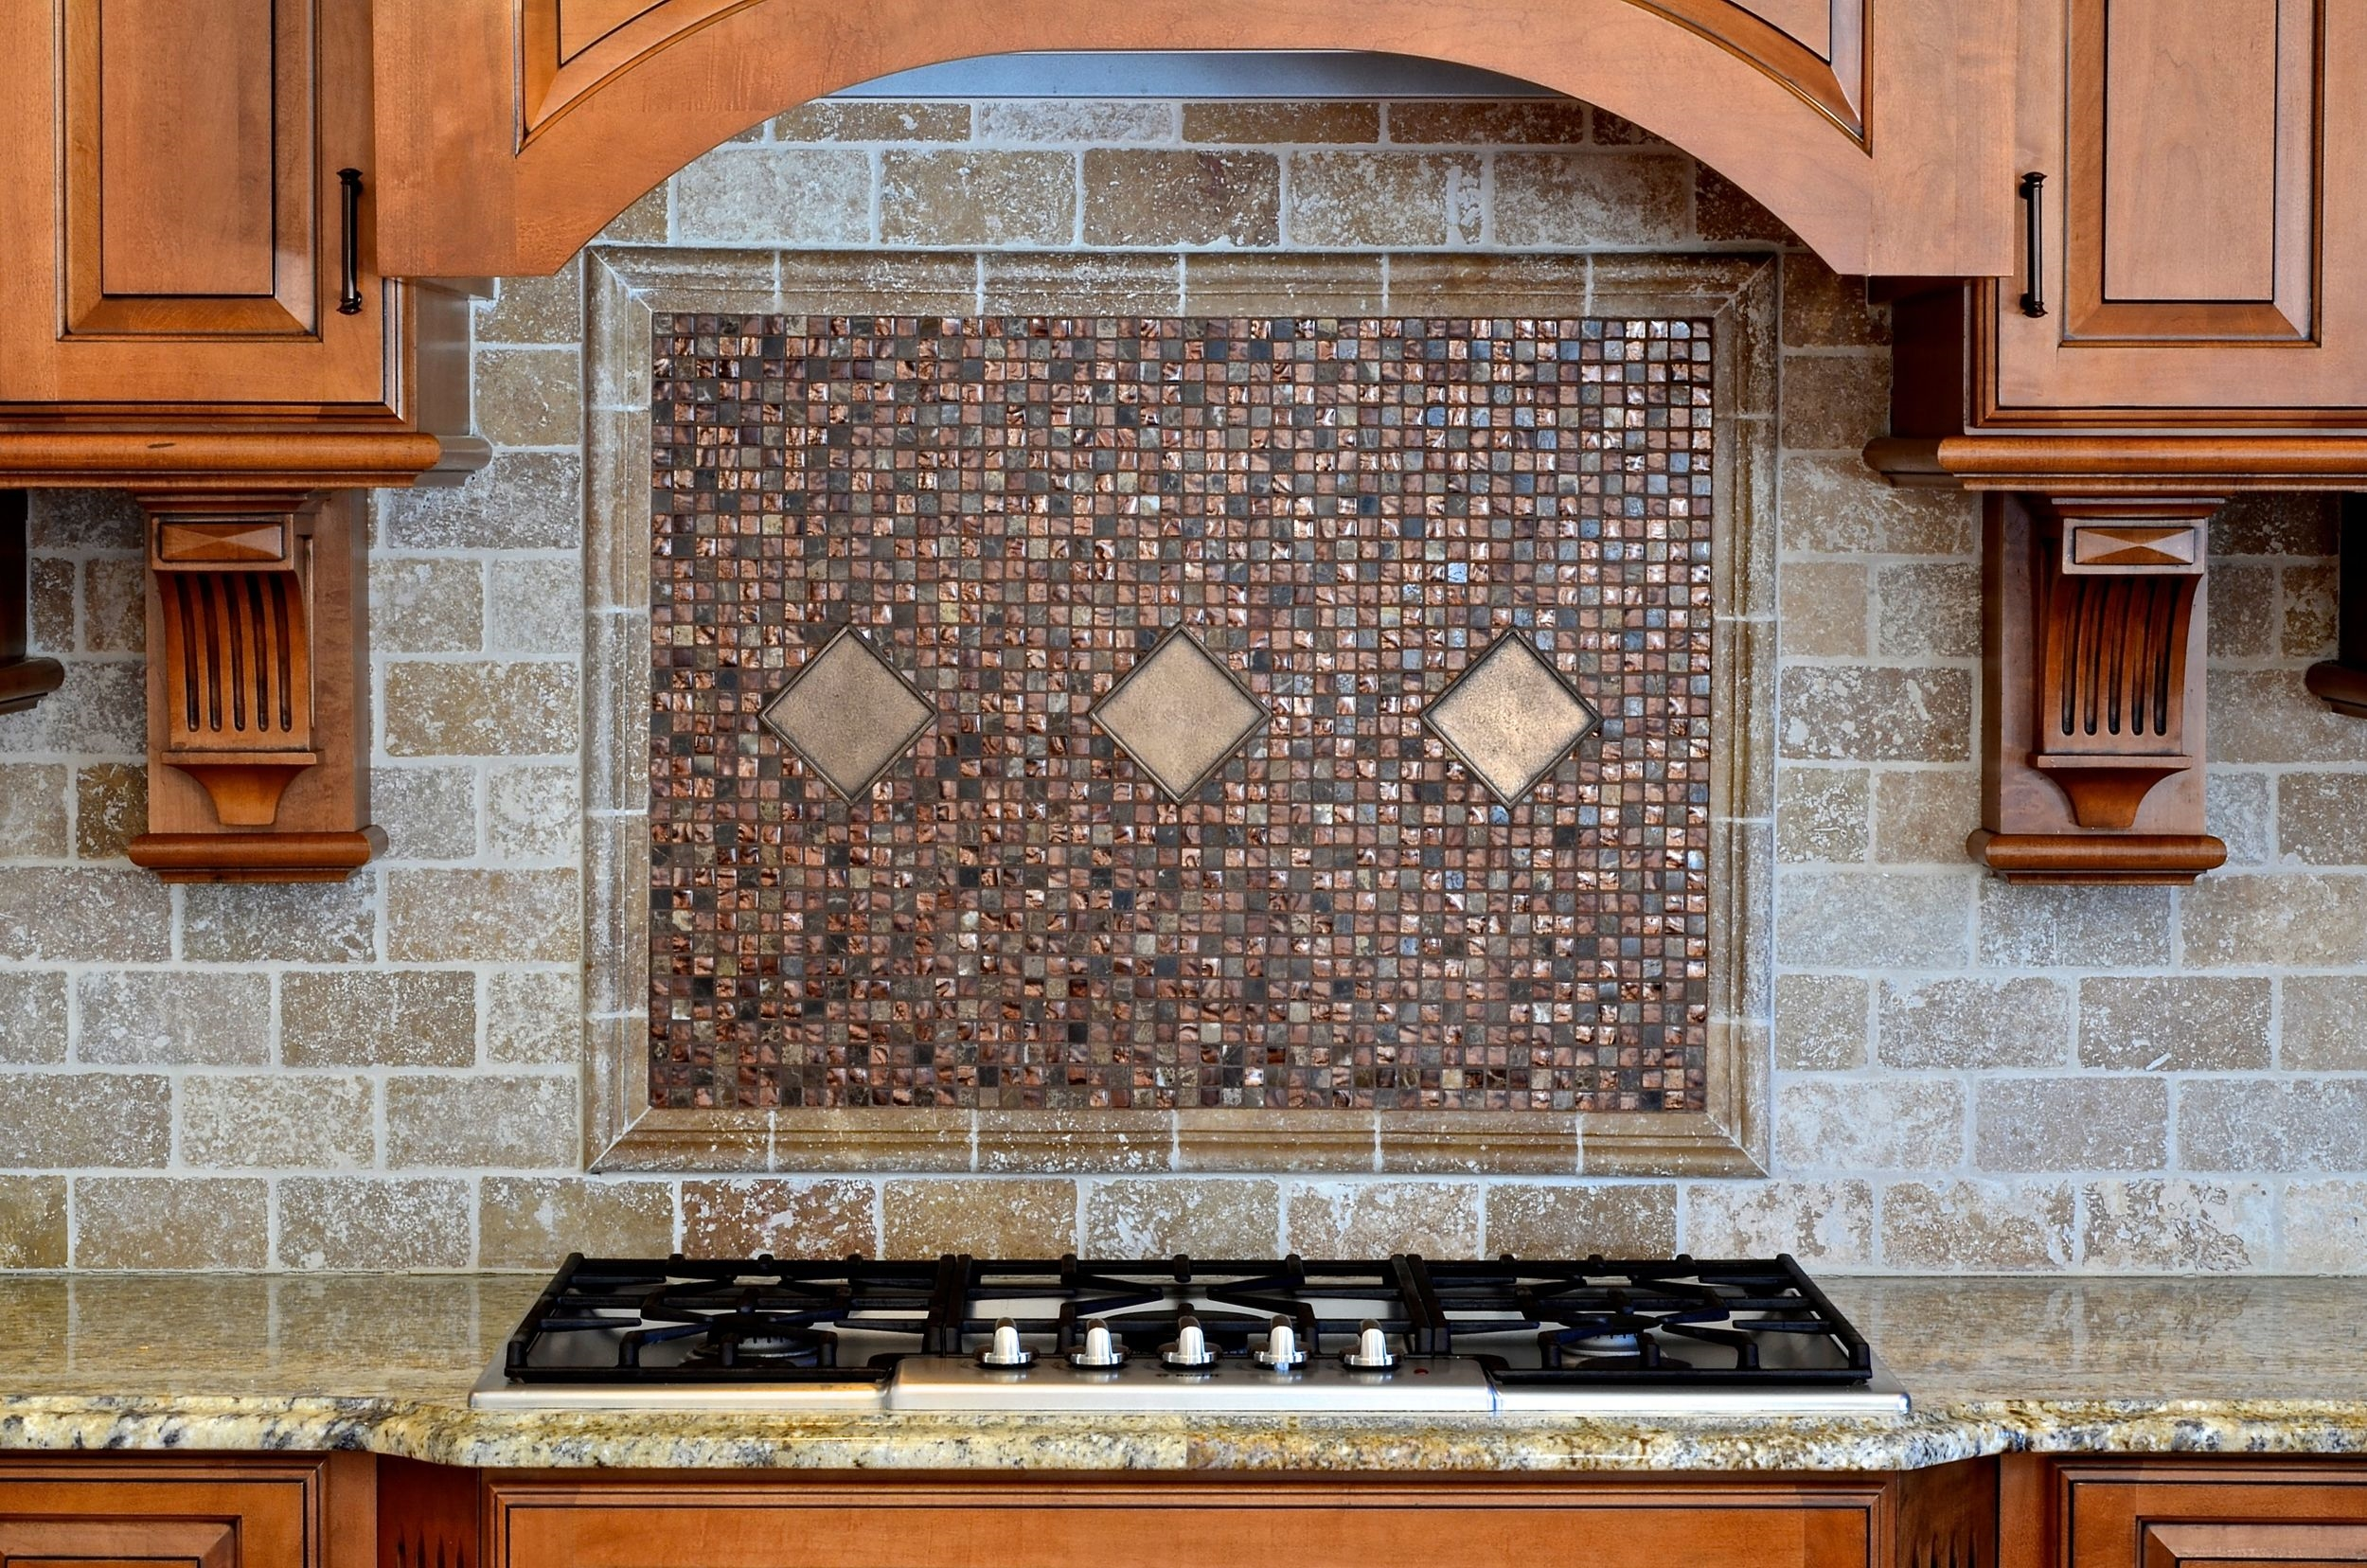 This beautiful mosaic and oiled bronze tile is an understated and elegant focal point in the cooking area.